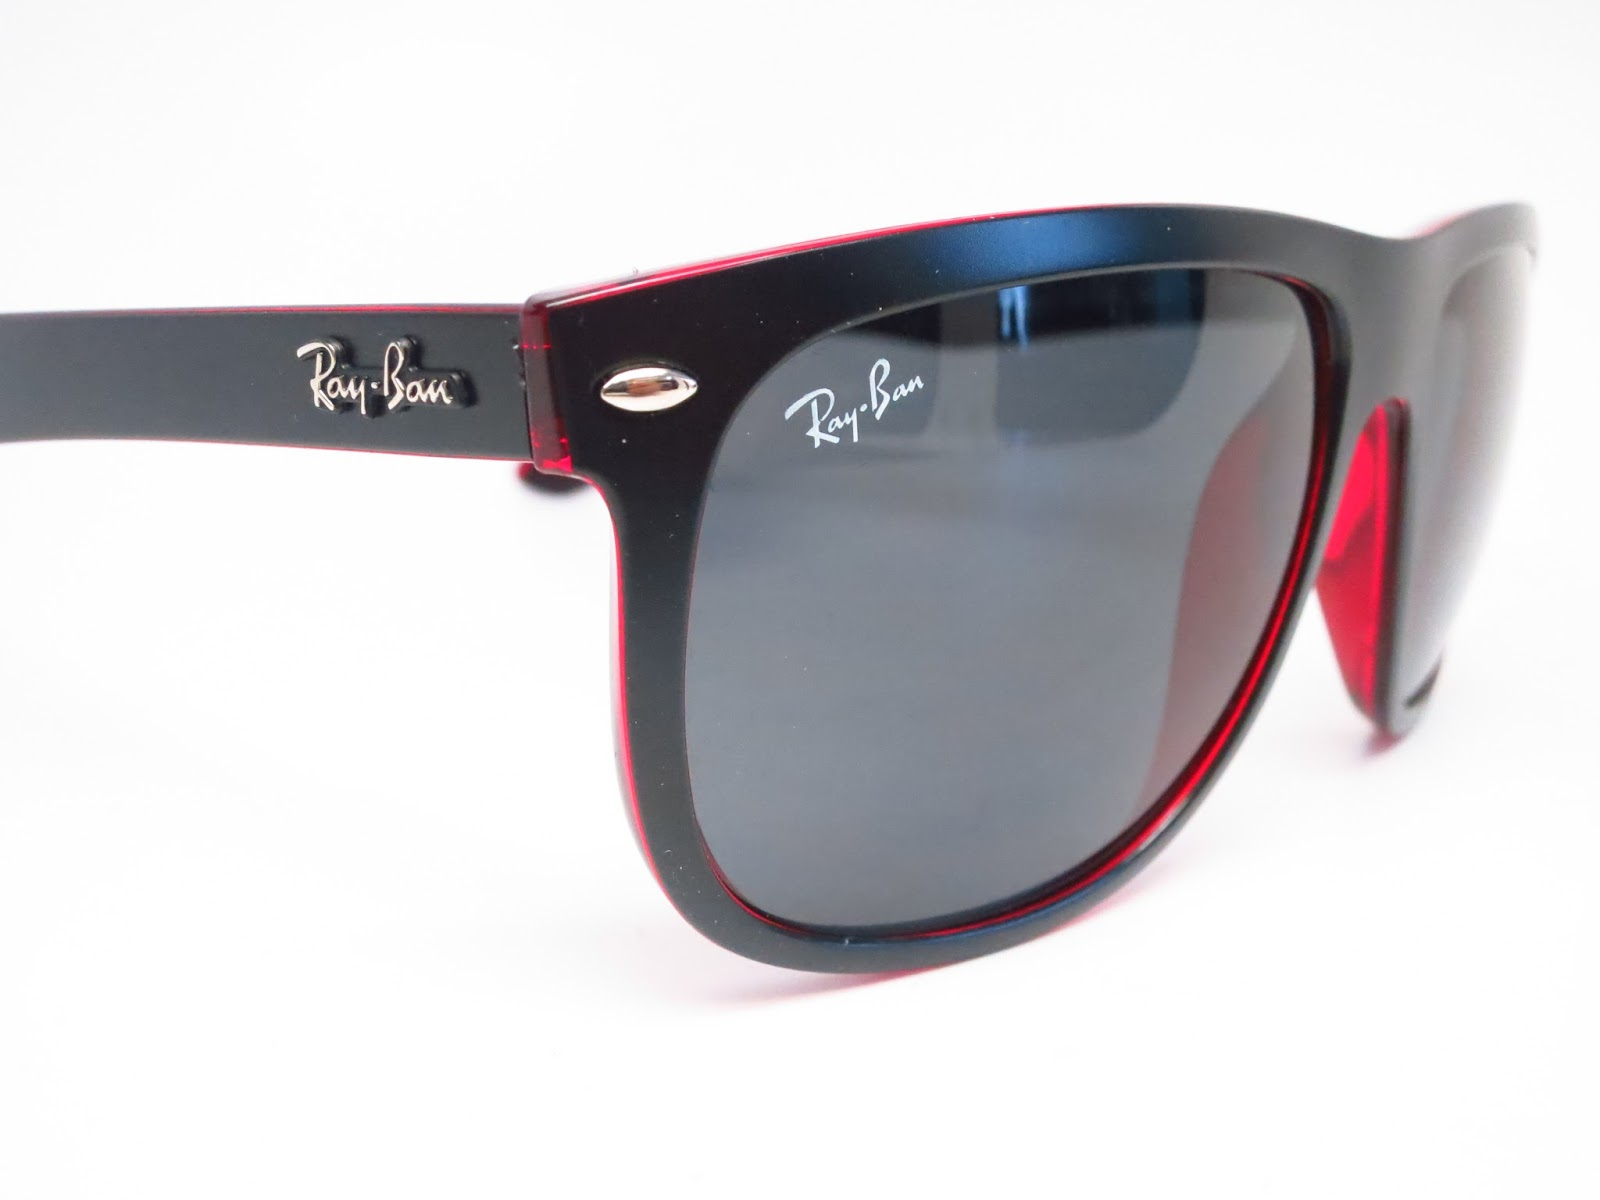 ff4c27dce8 Ray-Ban RB 4147 6171 87 Sunglasses Review